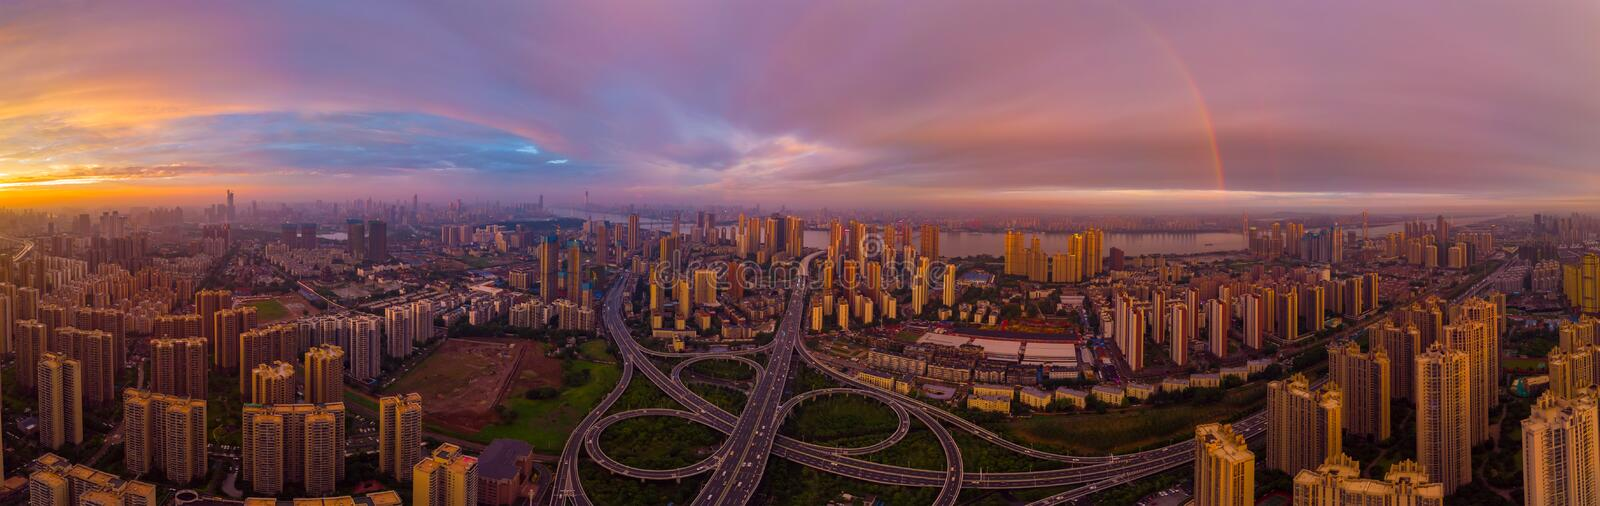 Wuhan city sunset and night aerial photography scenery in summer royalty free stock images